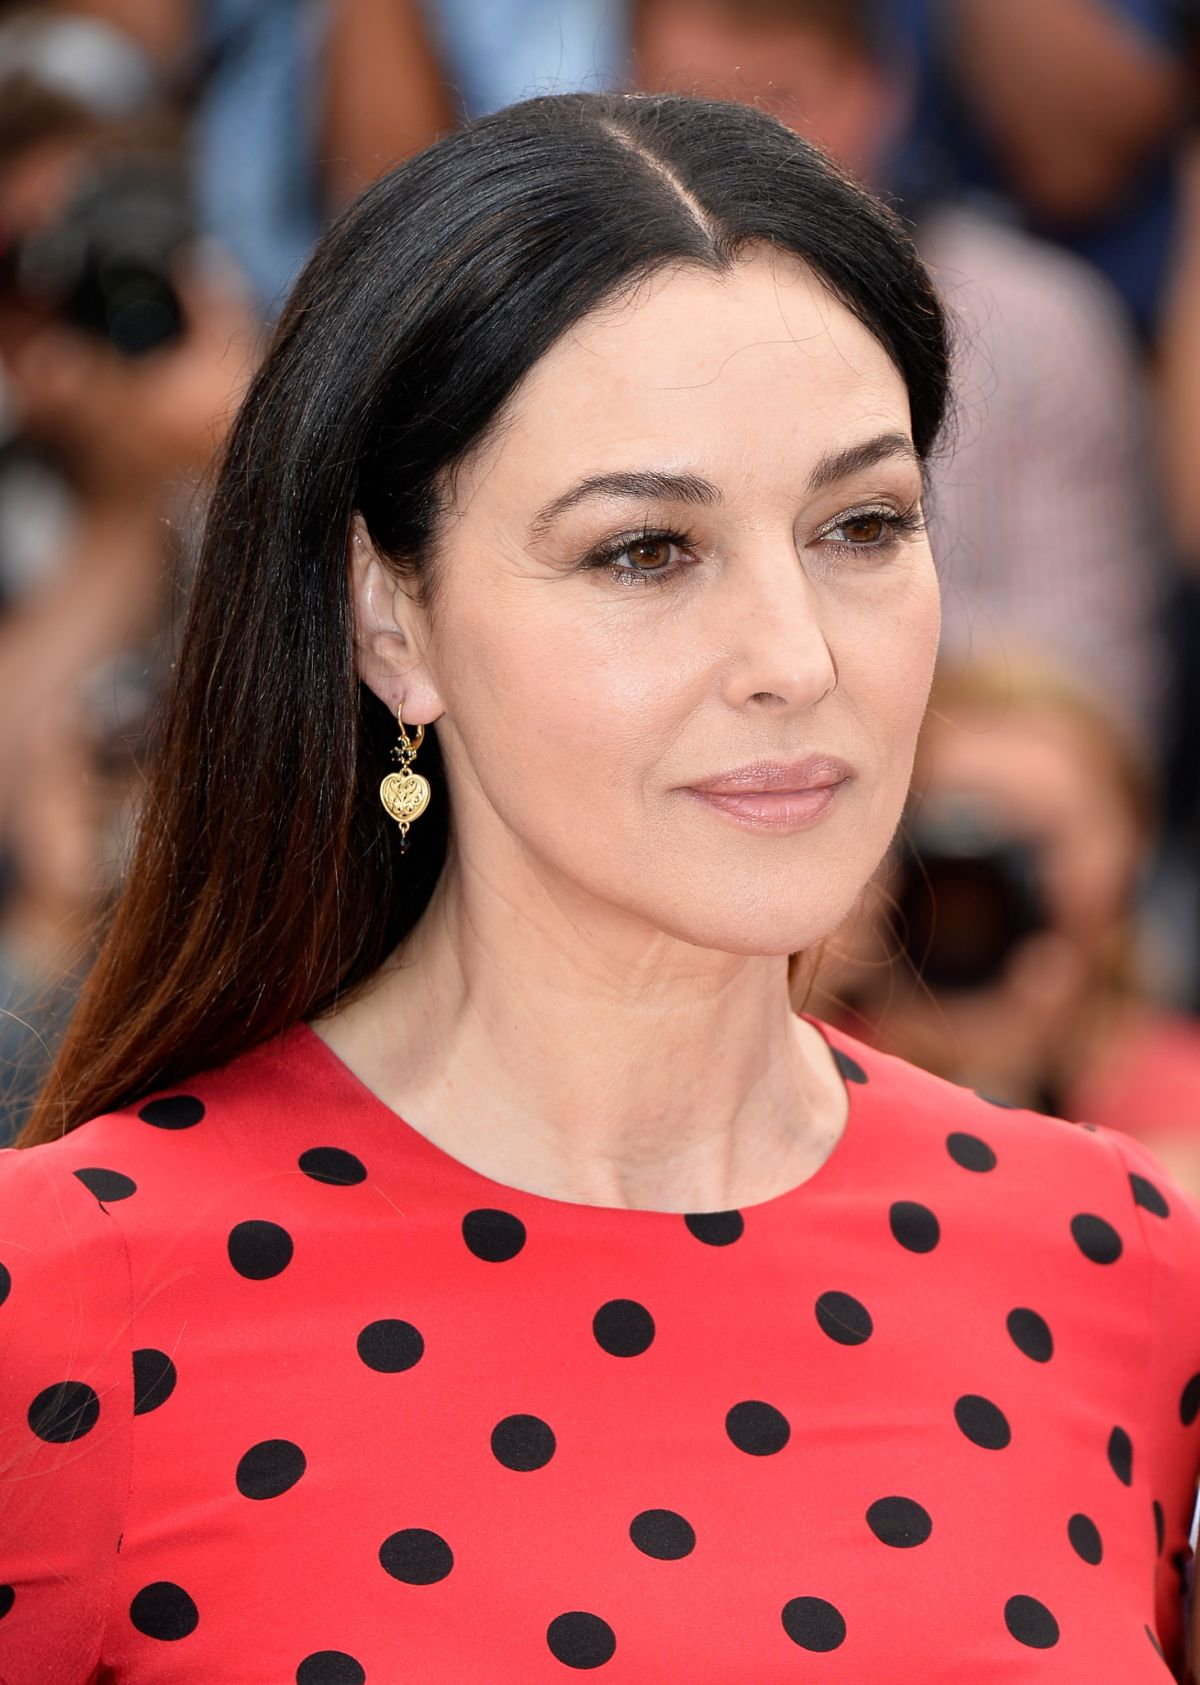 monica bellucci makeup